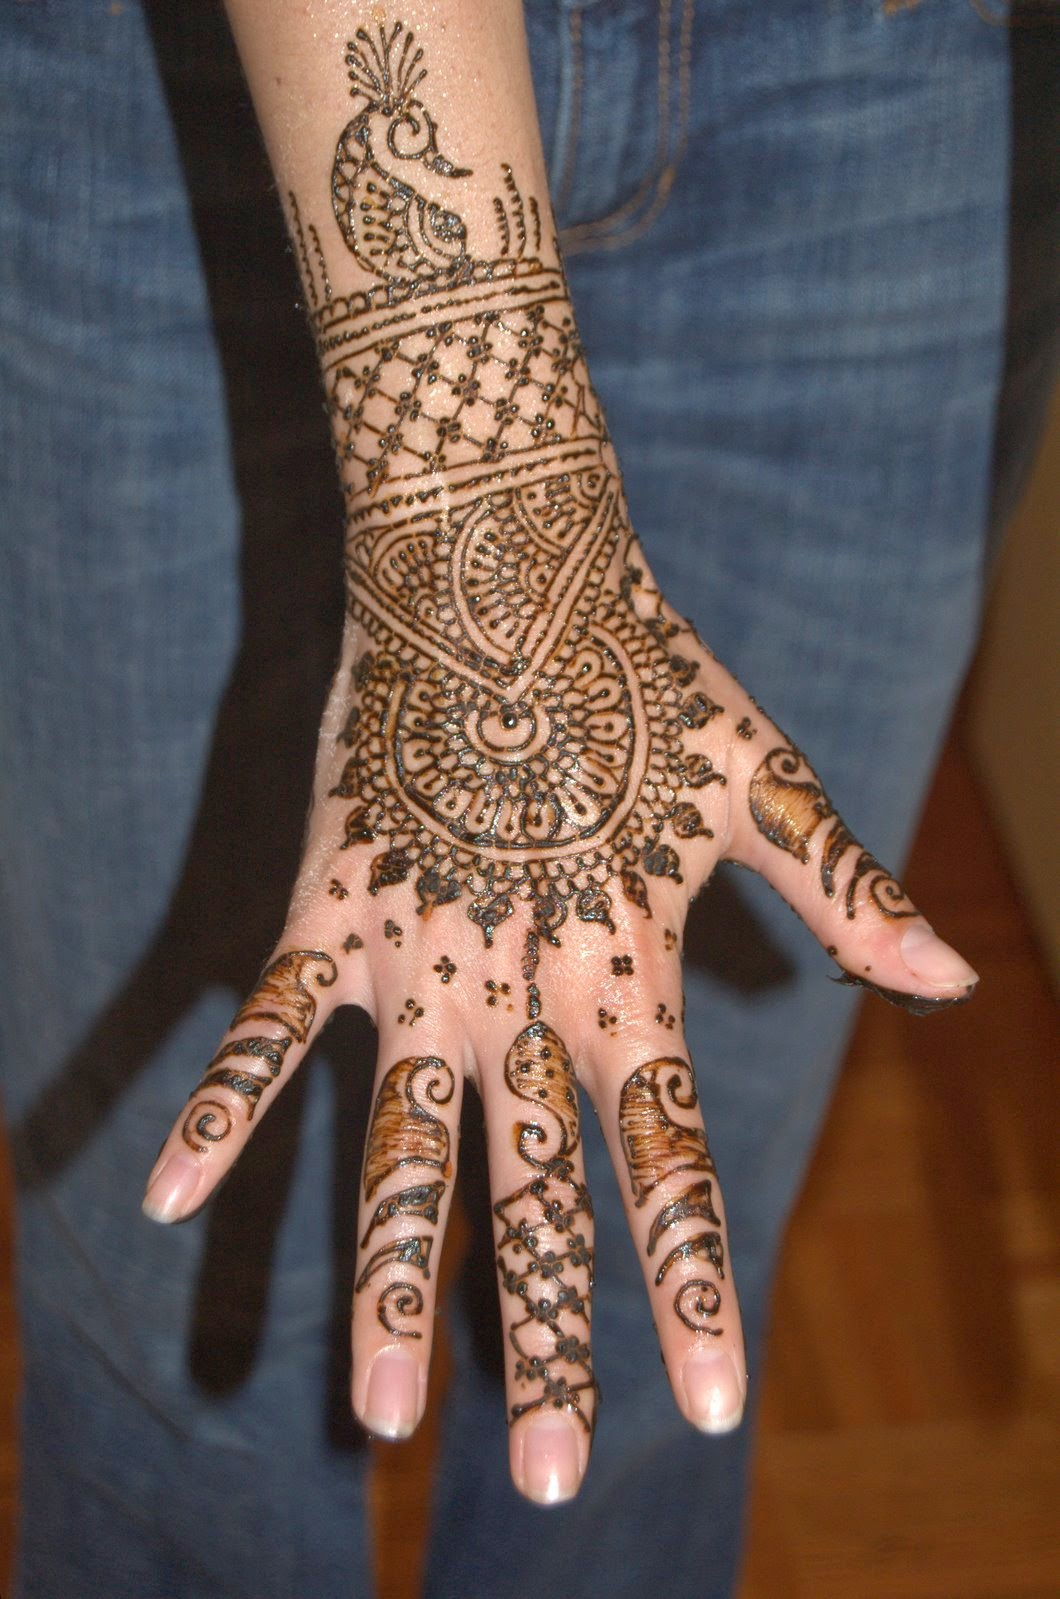 Hd Mehndi Designs Free Download